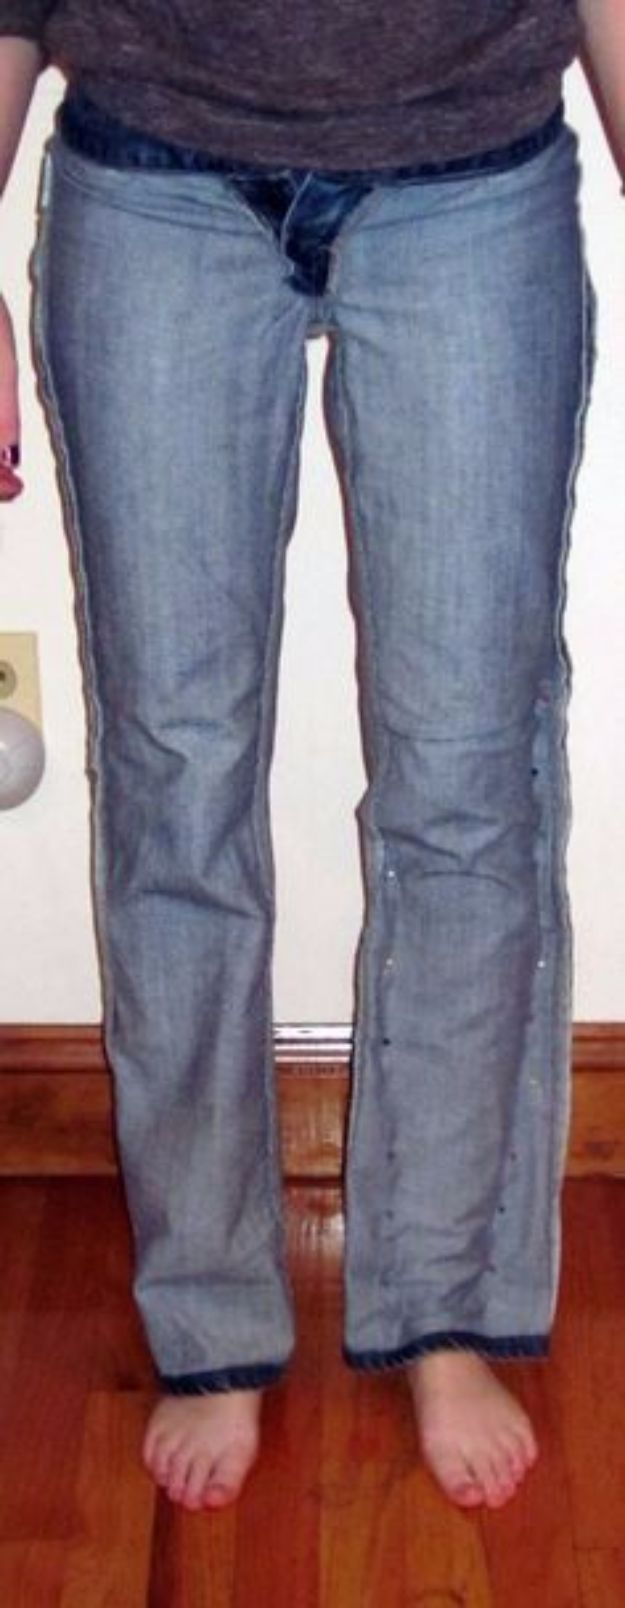 DIY Jeans Makeovers - Flares to Straight Leg - Easy Crafts and Tutorials to Refashion and Upcycle Your Jeans and Create Ripped, Distressed, Bleach, Lace Edge, Cut Off, Skinny, Shorts, Skirts, Galaxy and Painted Jeans Ideas - Cool Denim Fashions for Teens, Teenagers, Women http://diyprojectsforteens.com/diy-jeans-projects